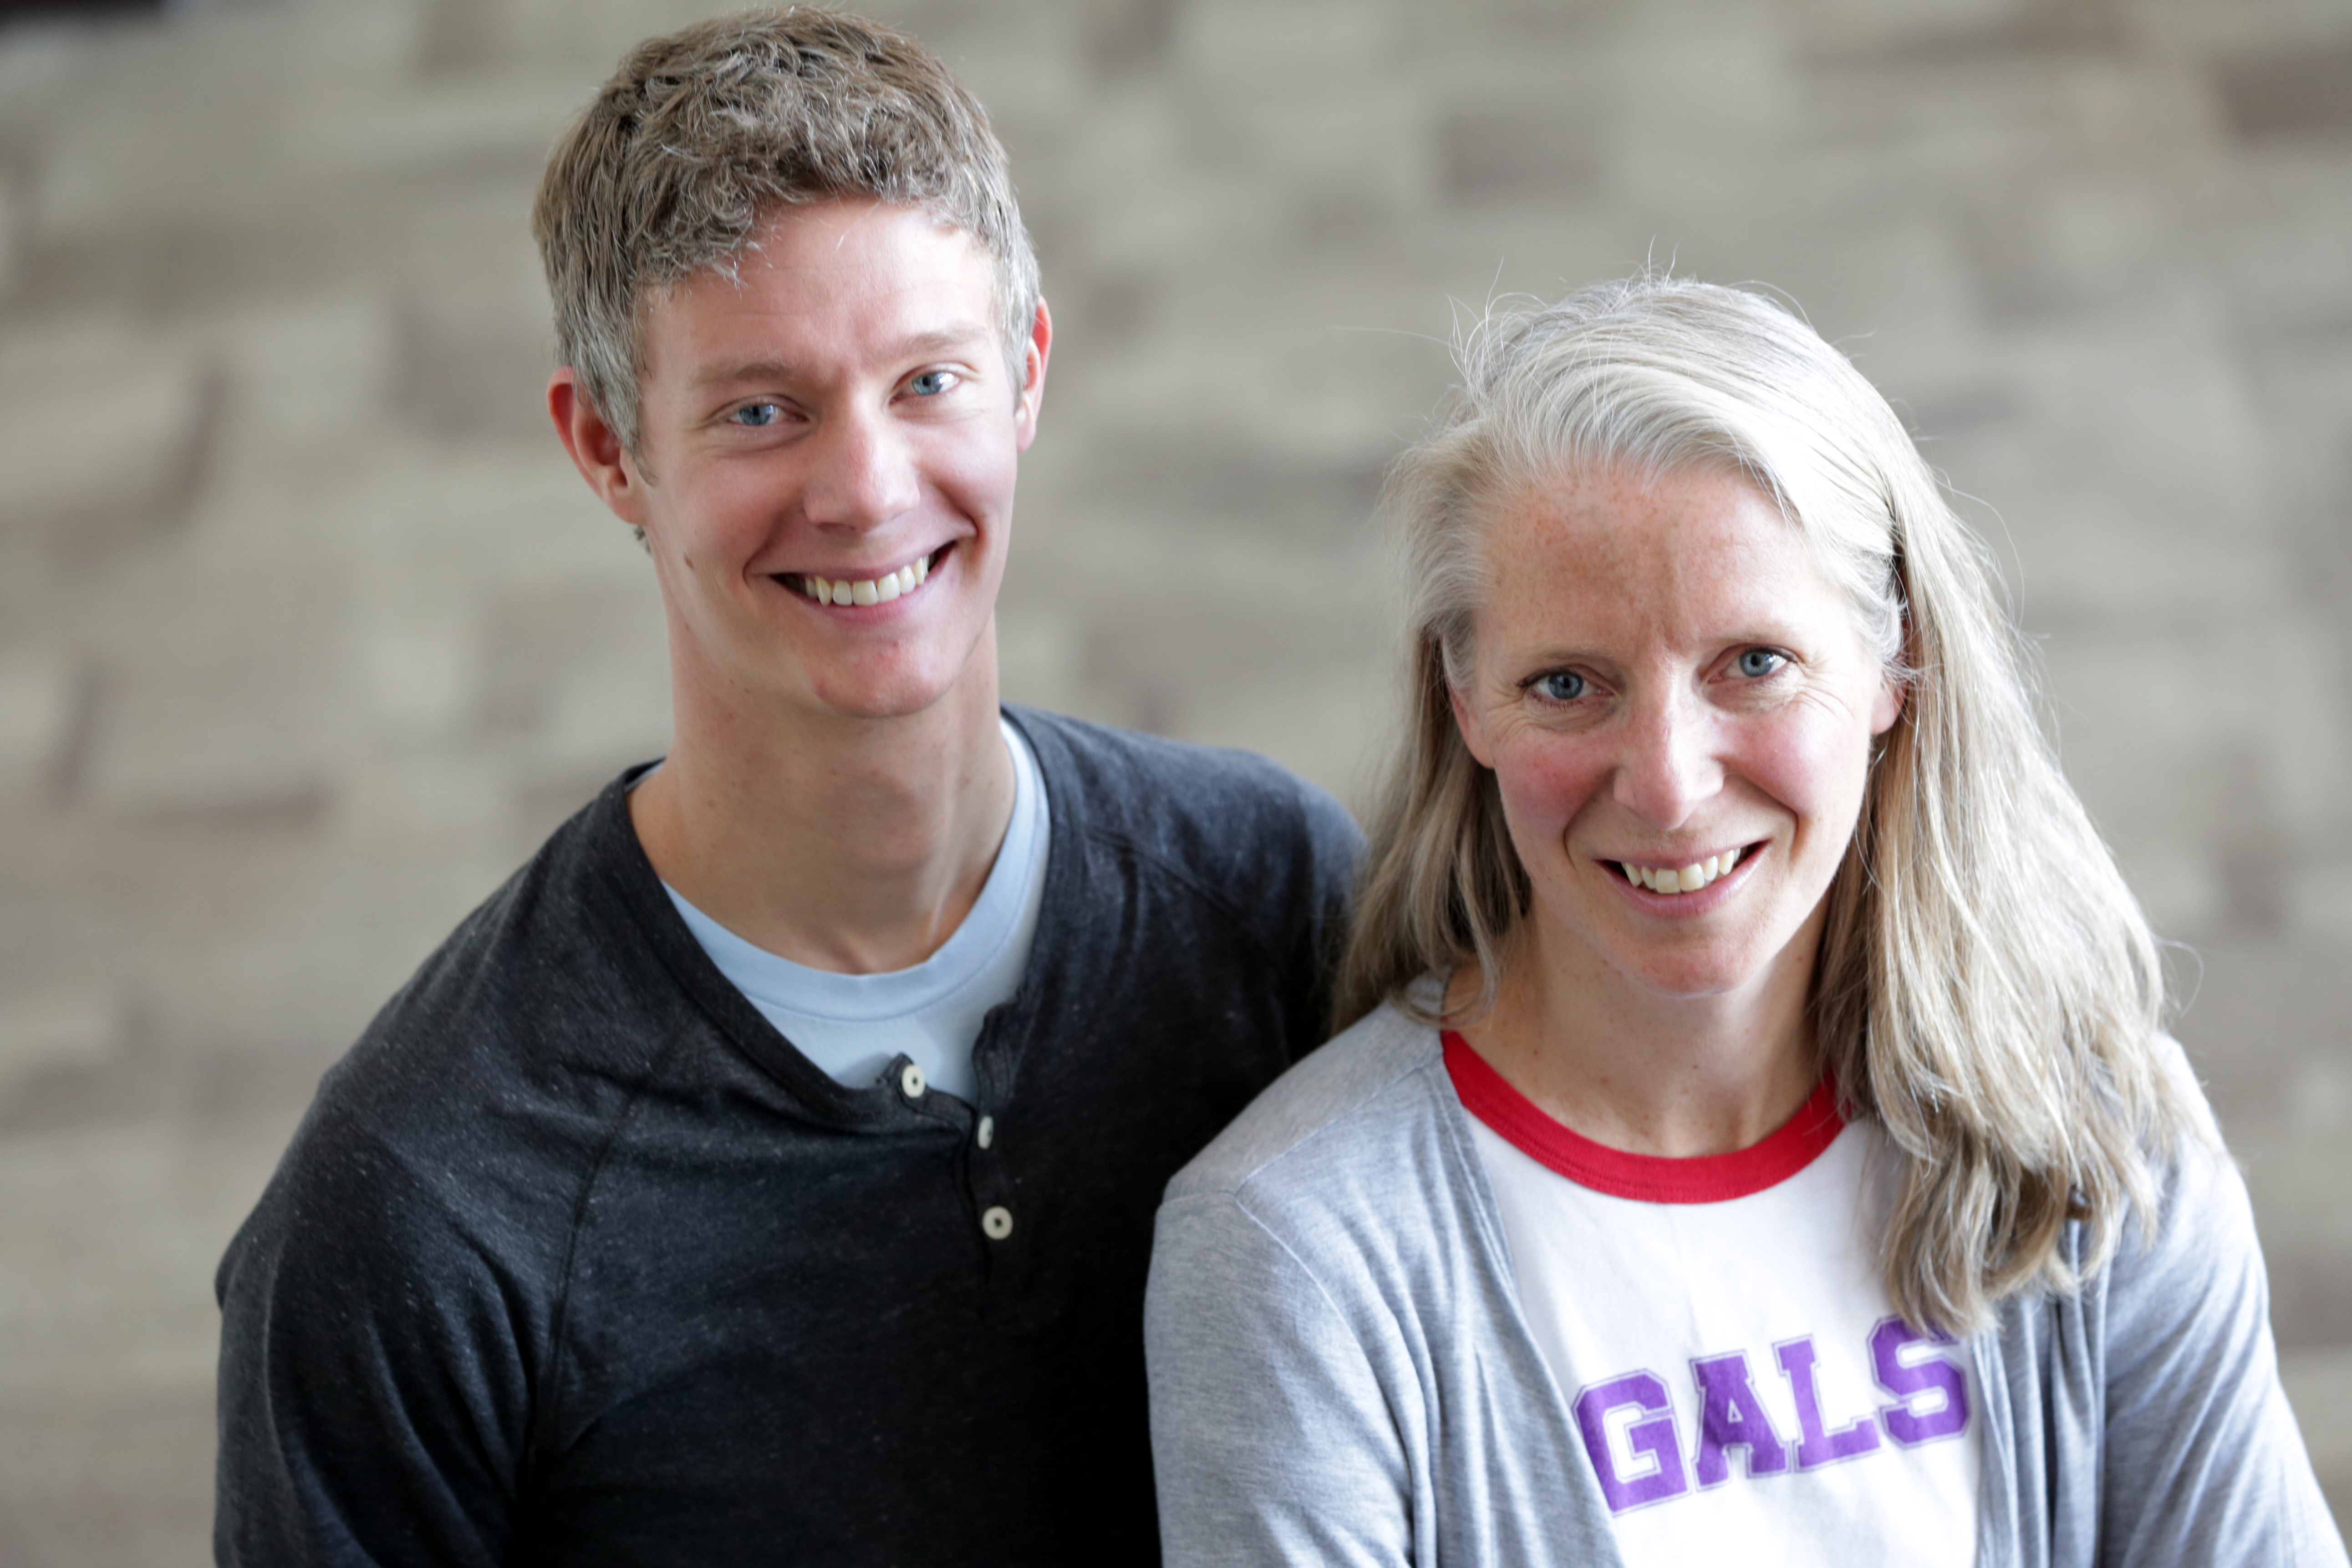 <p>Nick Jackson is a language arts teacher at the Girls Athletic Leadership School (GALS)in Denver. He hopes to be the head of school at the boys school in the fall of 2017. Carol Bowar will be the executive director of both.</p>